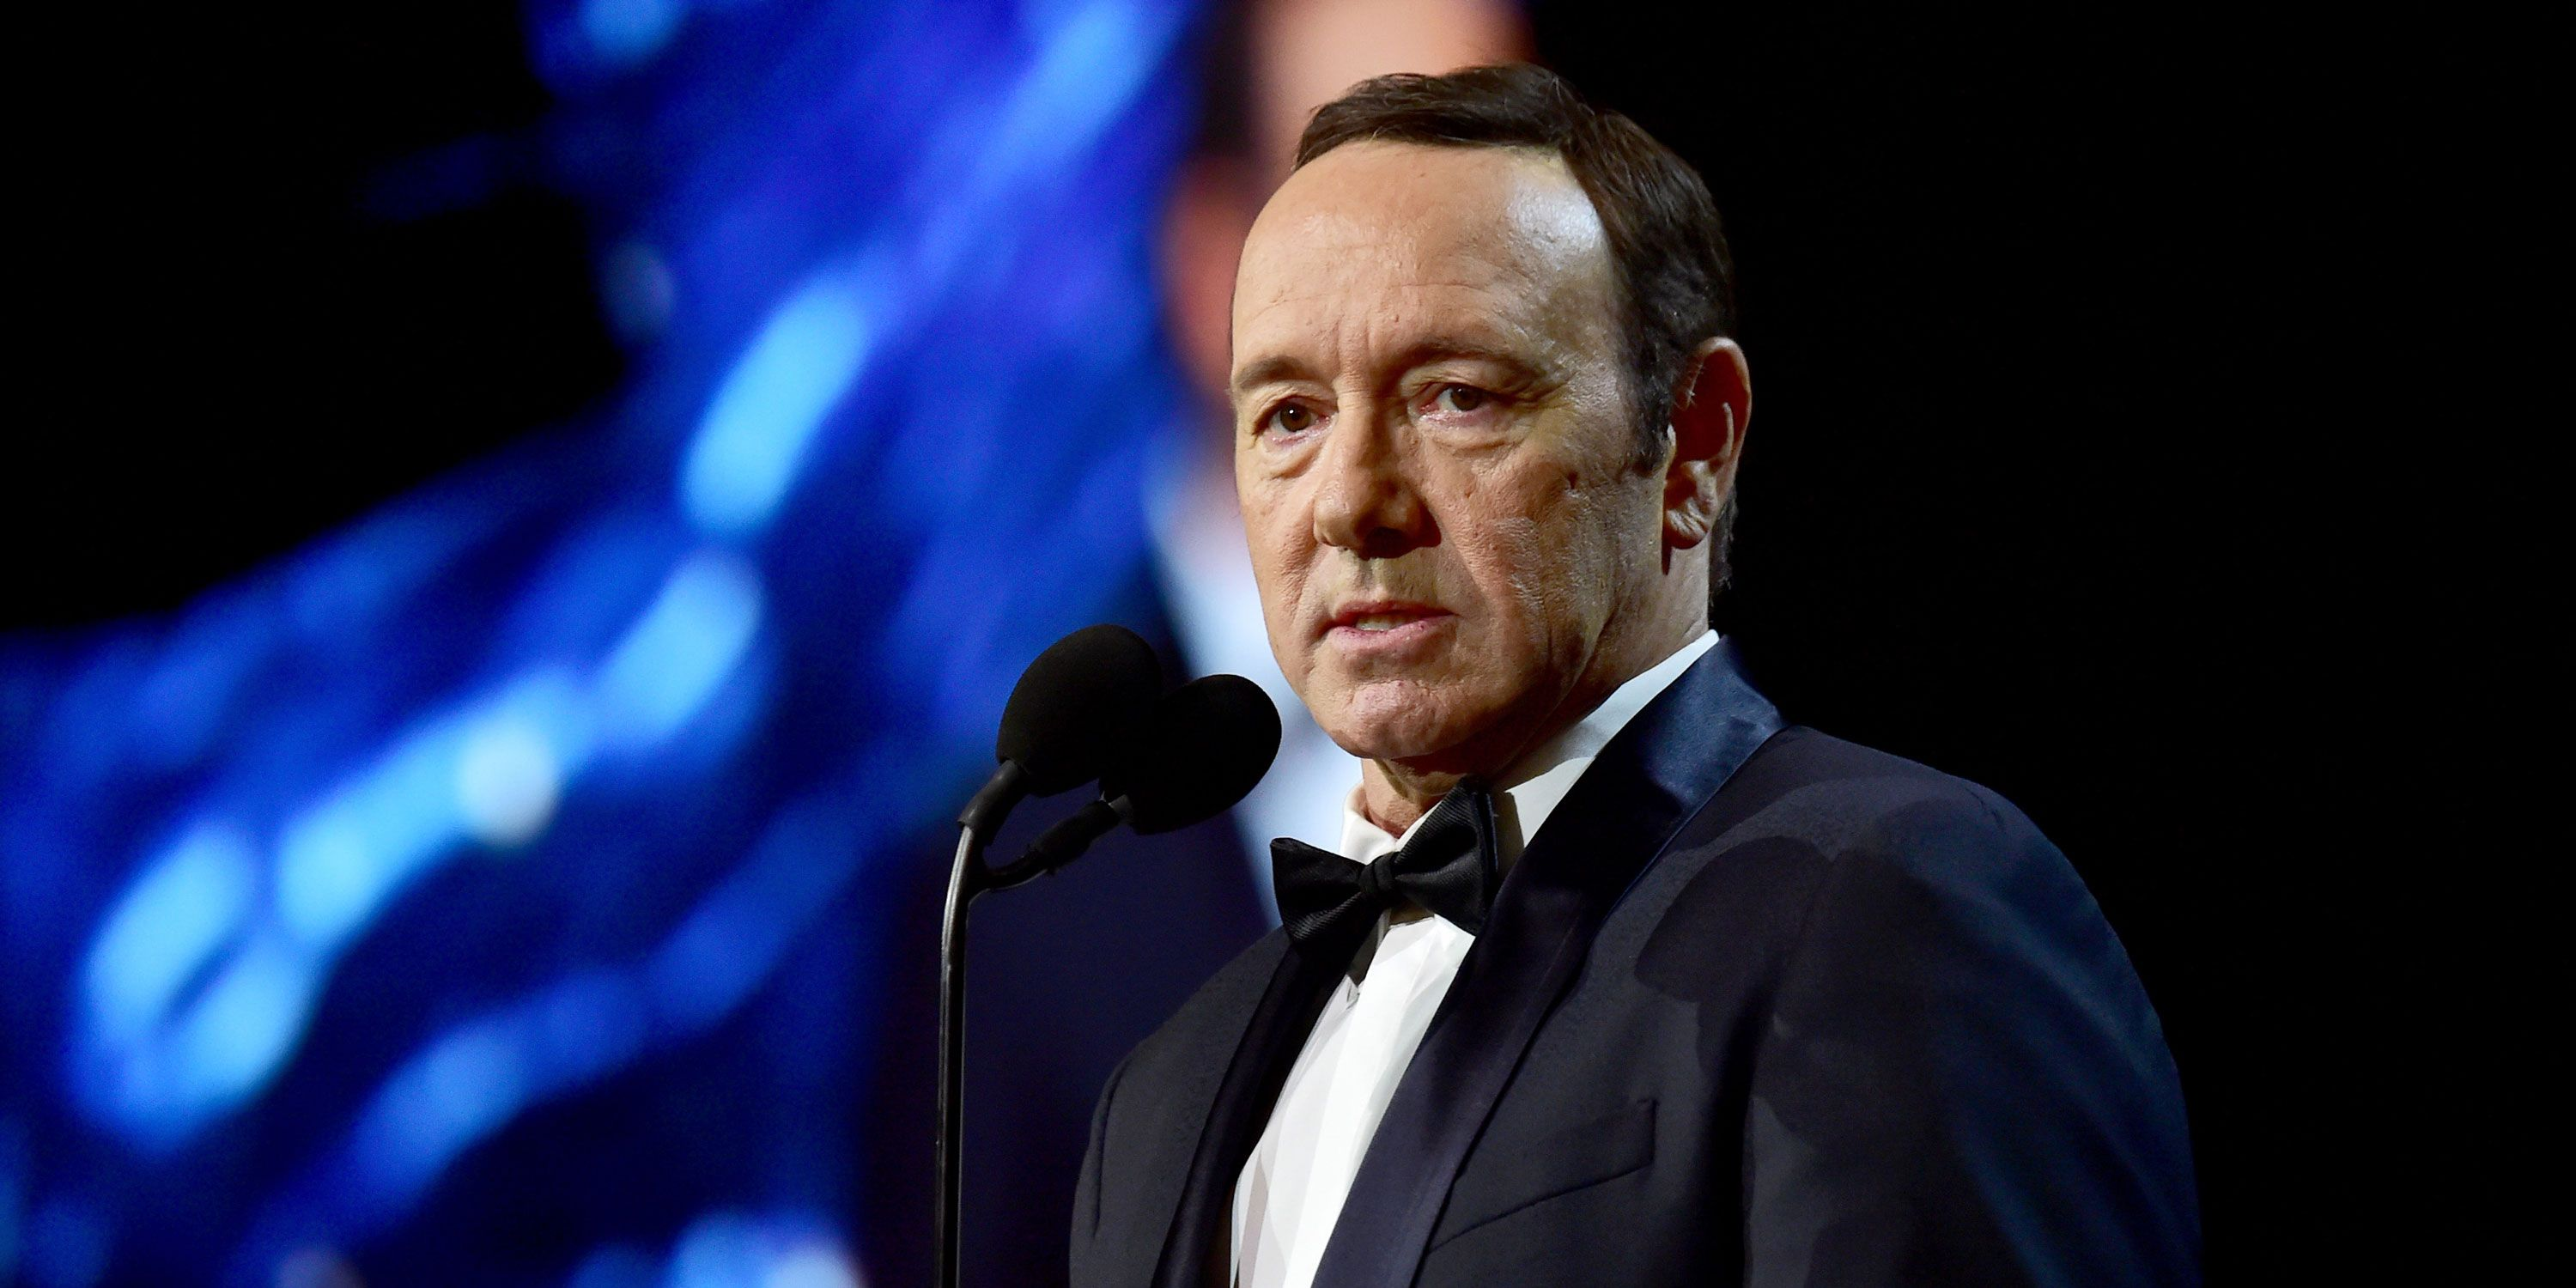 Kevin Spacey speaks onstage at the 2017 AMD British Academy Britannia Awards